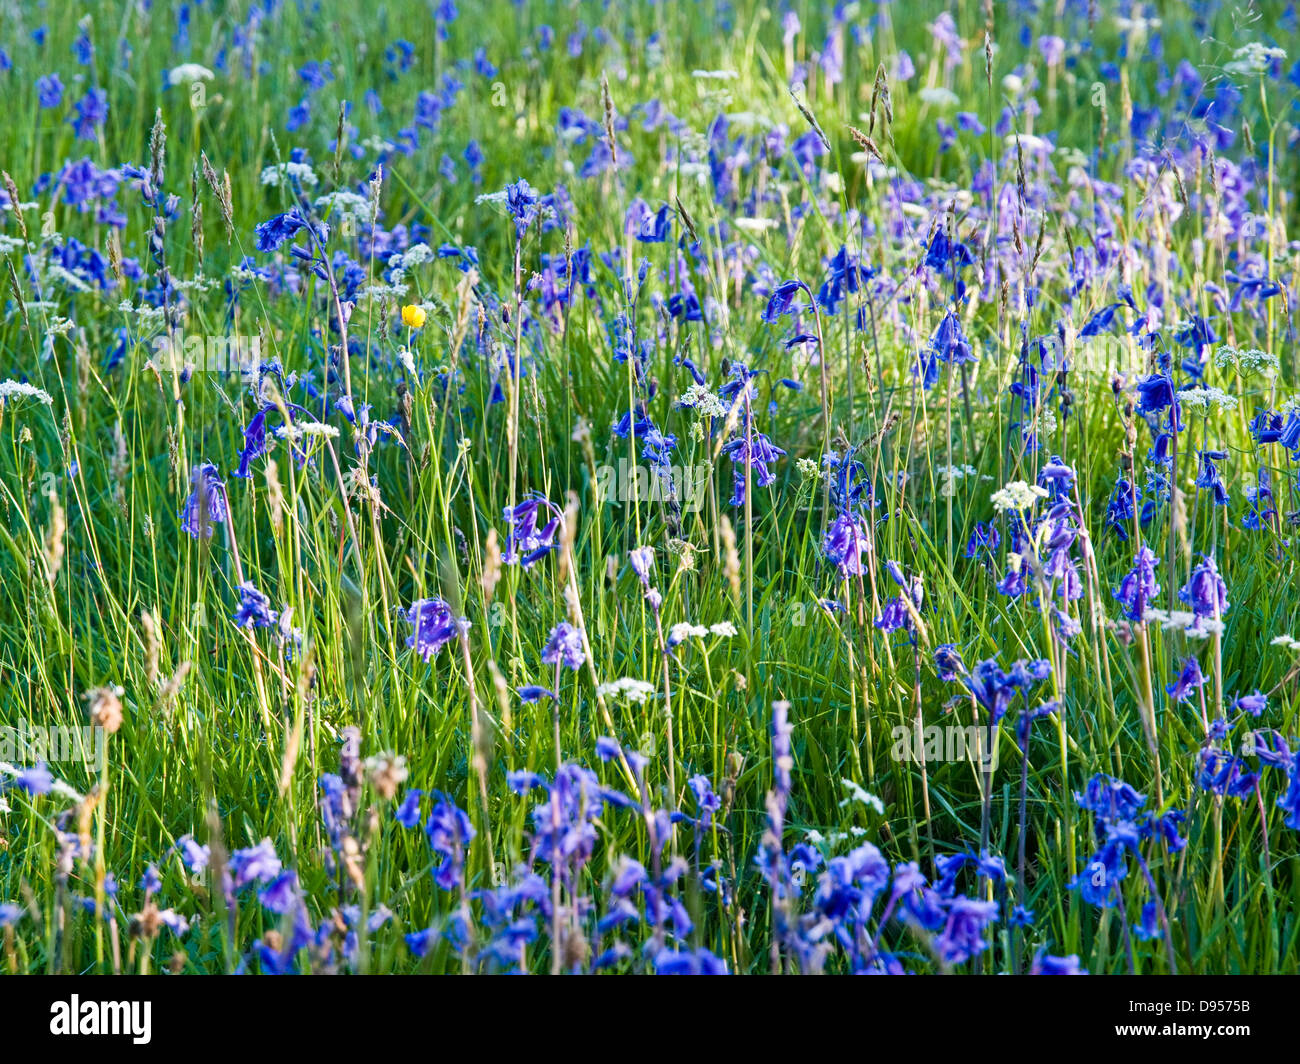 bluebells in Scottish meadow with dappled sunlight - Stock Image